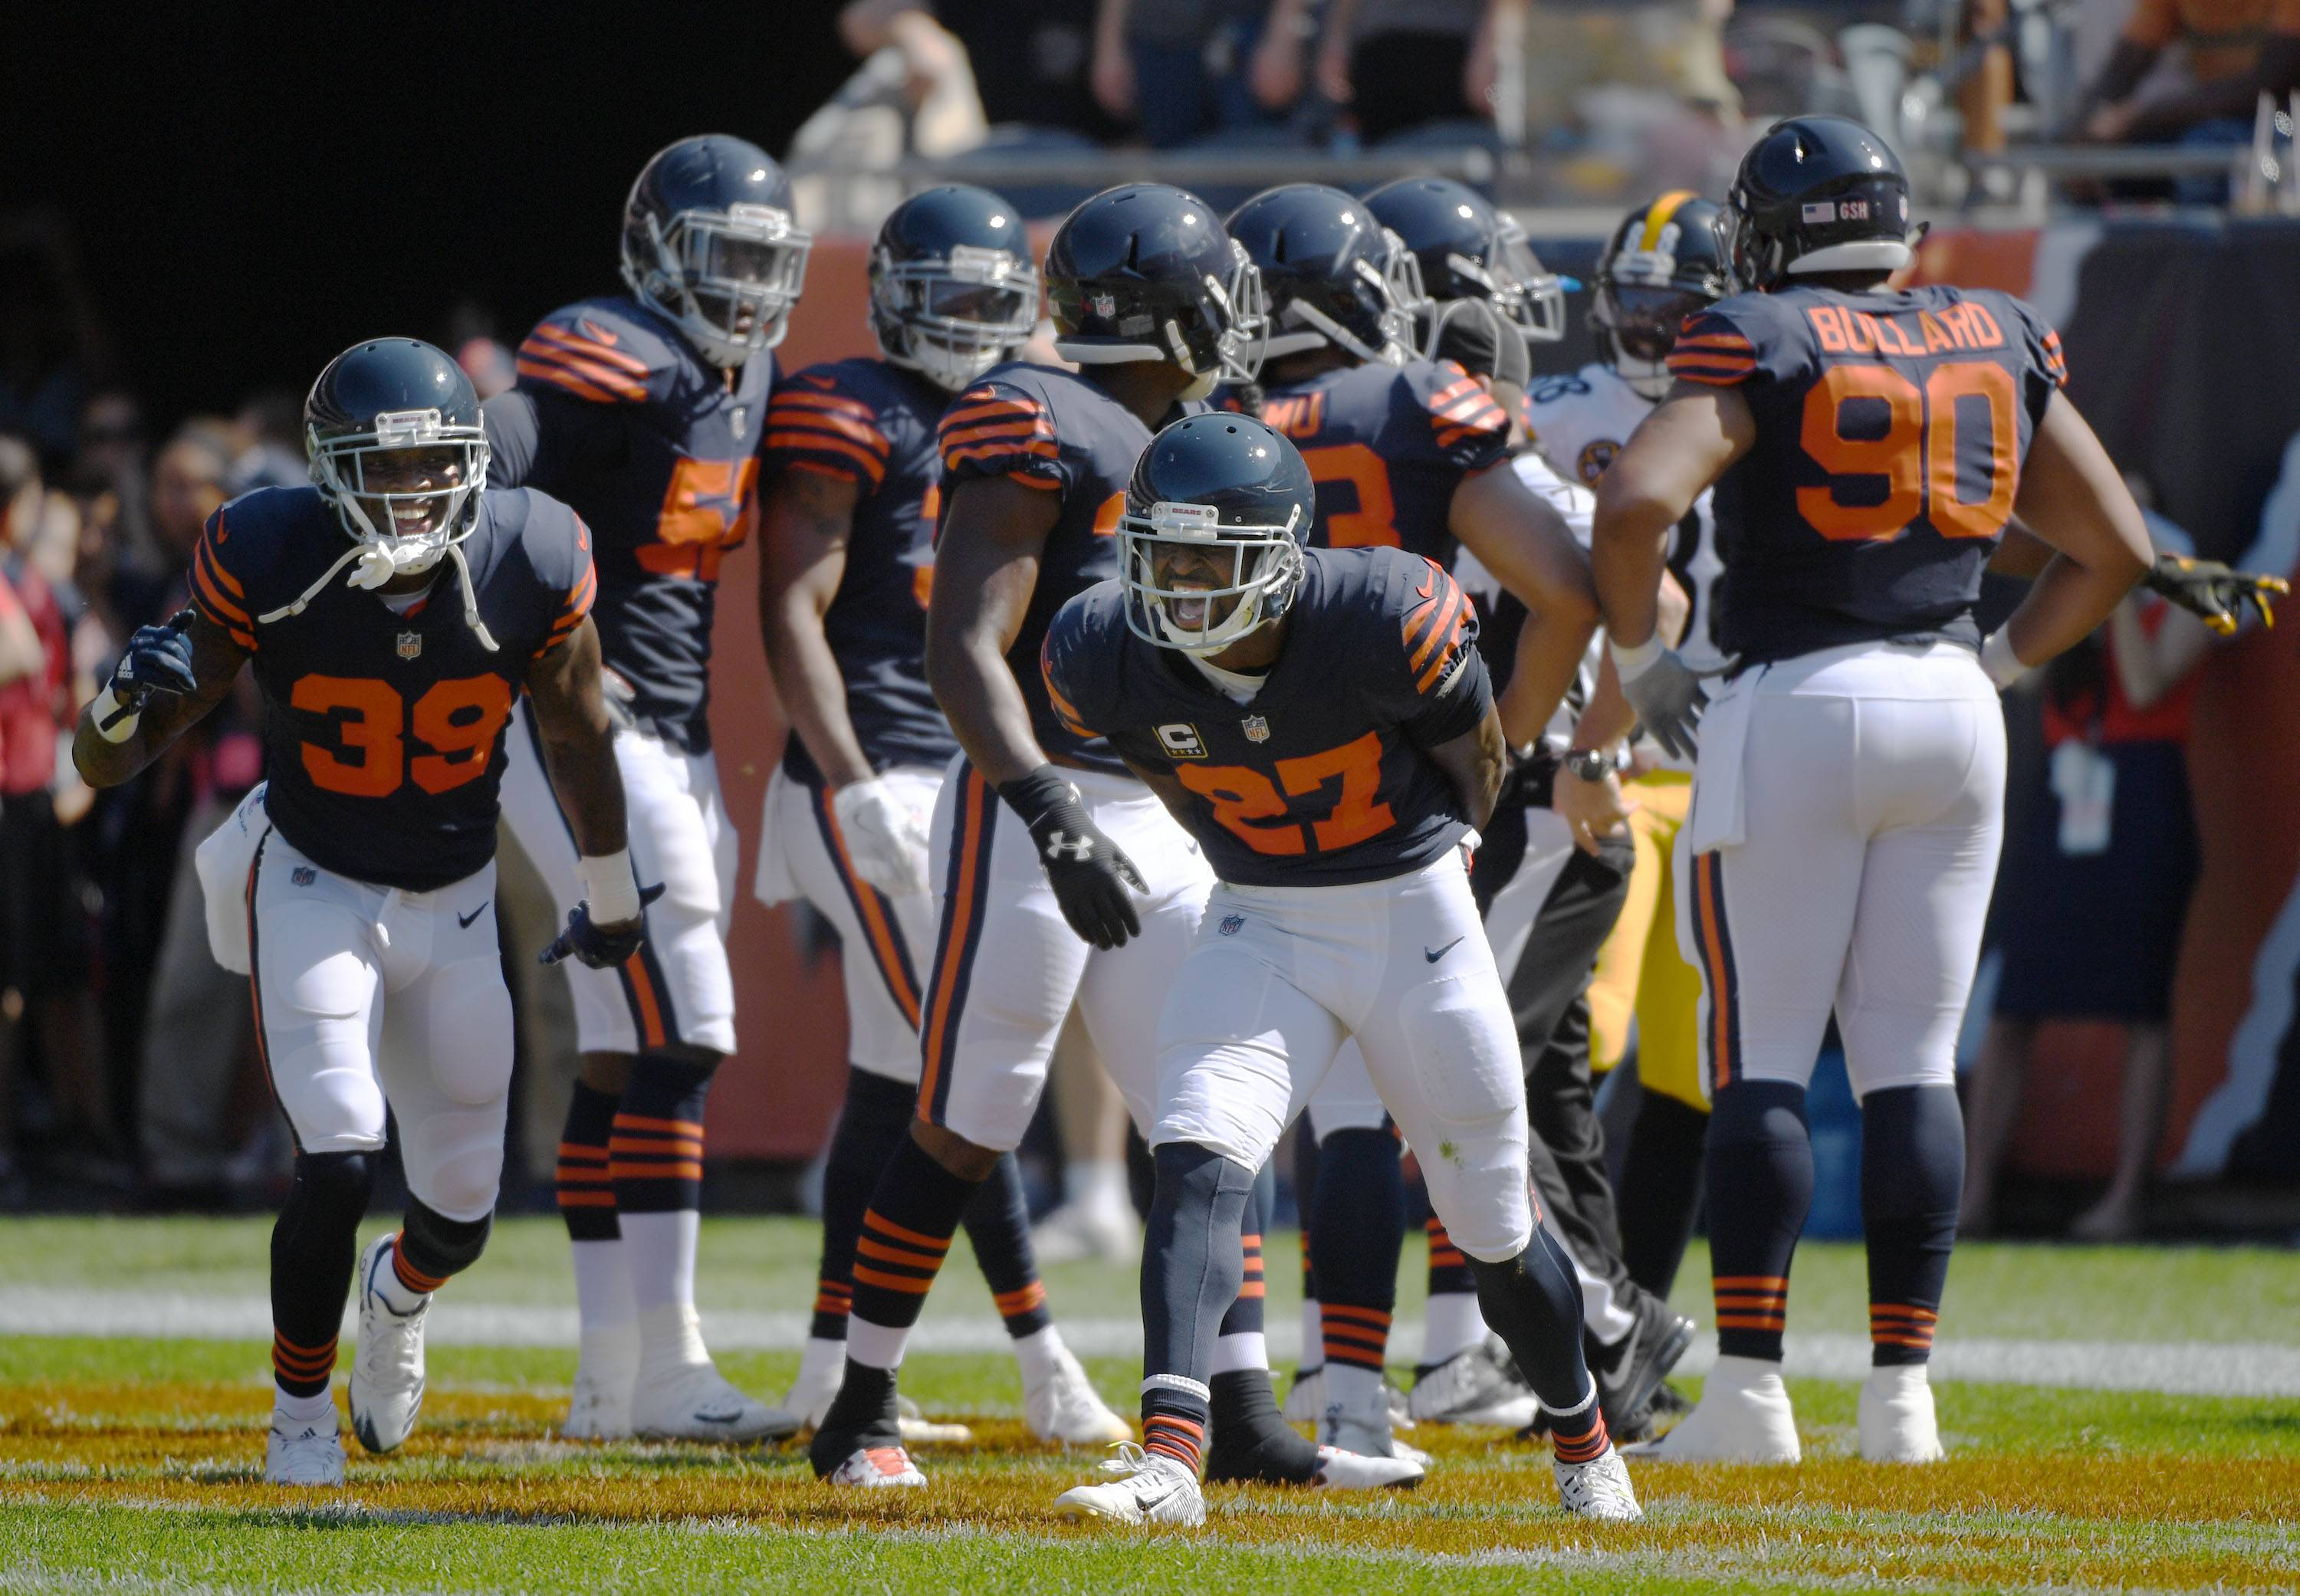 John Starks/jstarks@dailyherald.com Chicago Bears cornerback Sherrick McManis reacts after teammate Marcus Cooper scored a touchdown to start overtime against the Pittsburgh Steelers Sunday at Soldier Field in Chicago. The run was called back because official ruled he stepped out of bounds but the Bears scored minute later to win.